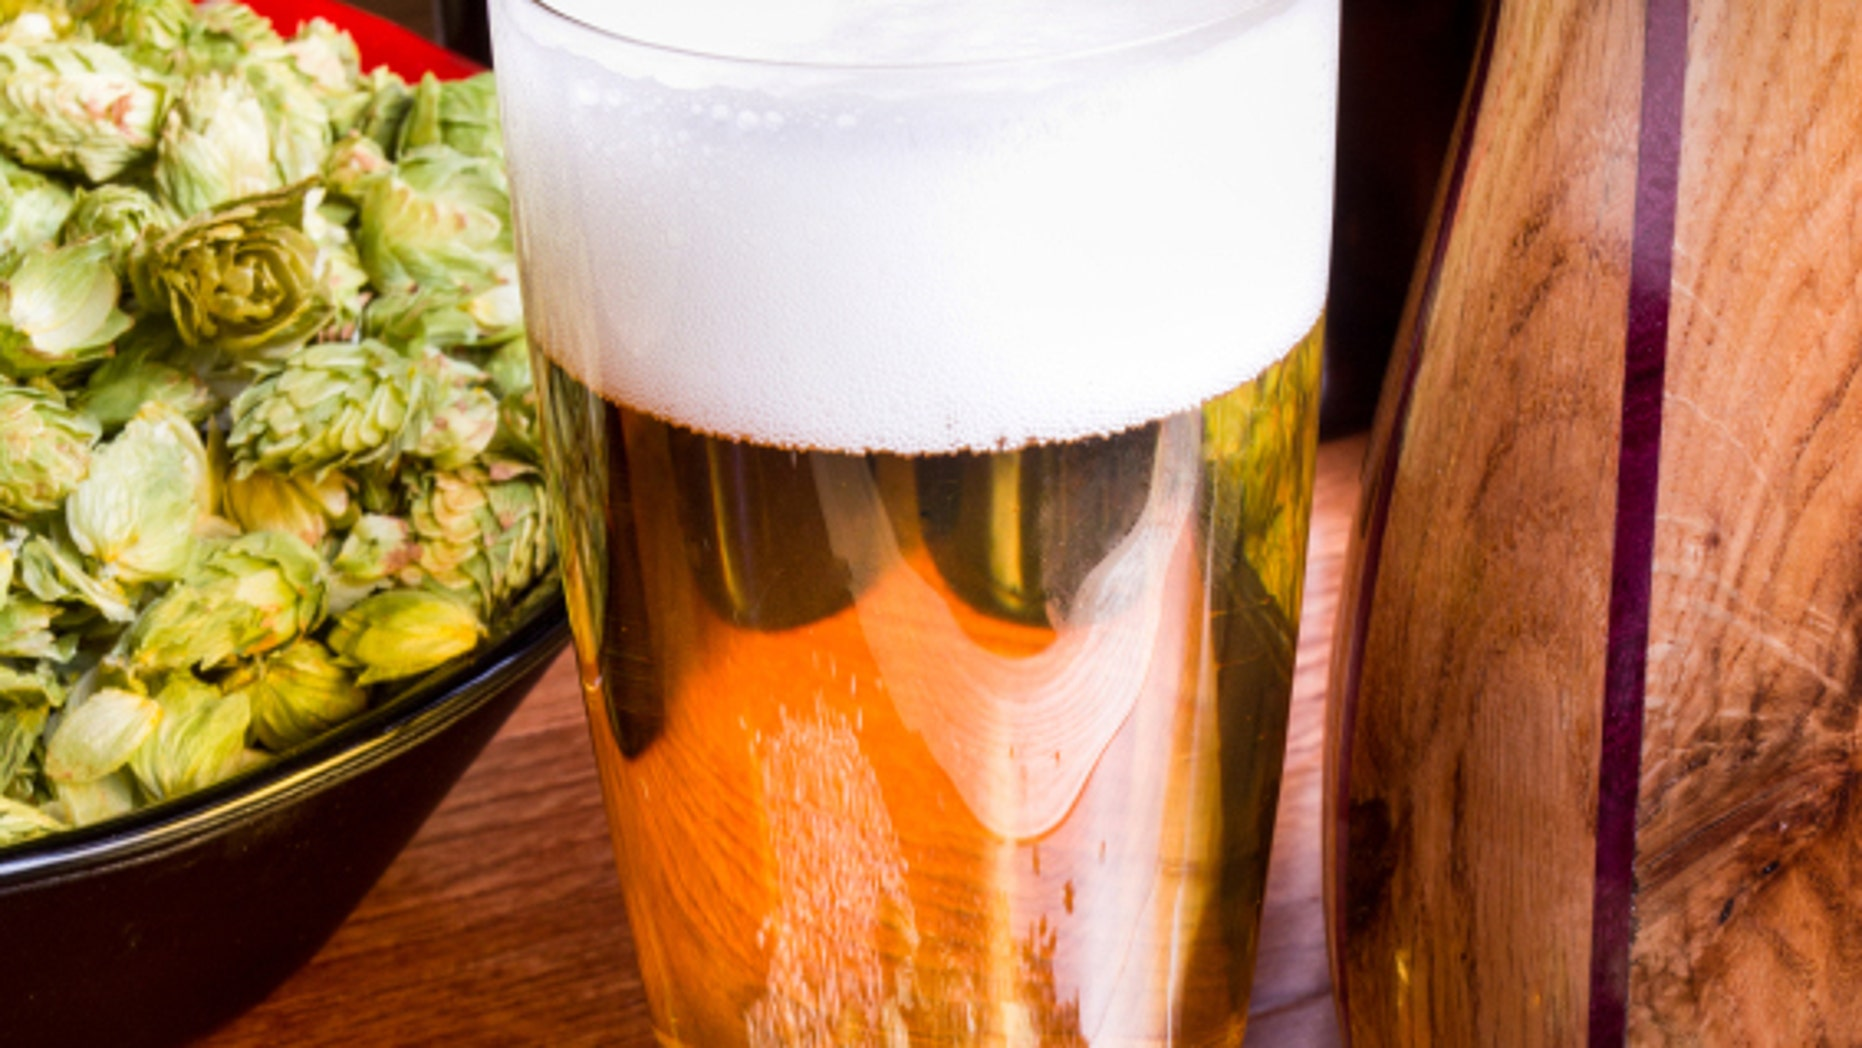 Hops make beer tasty but they also produce some powerful medicinal qualities.